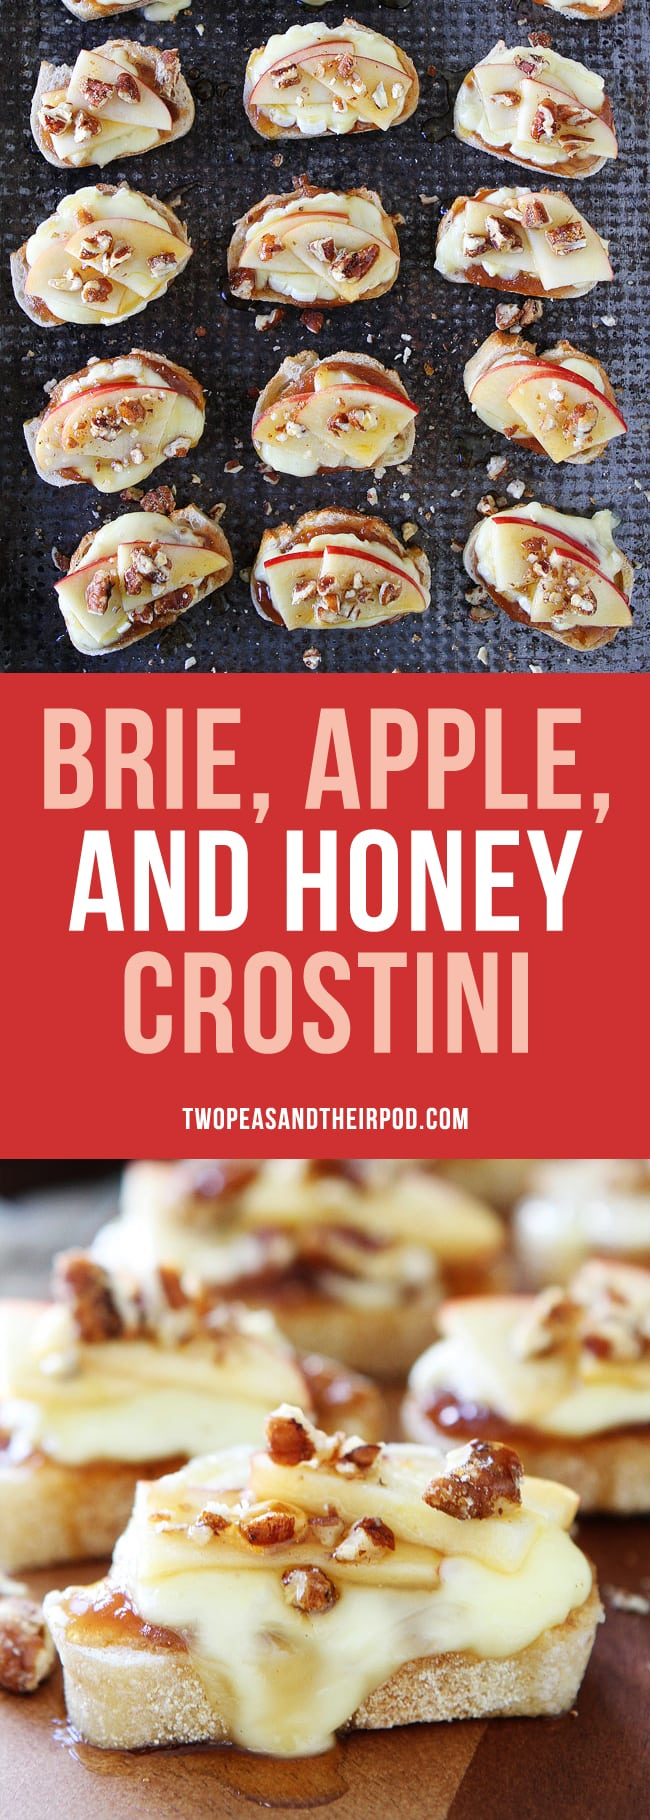 Brie Apple and Honey Crostini is a quick and easy holiday appetizer! #holidays #brie #apple #appetizer